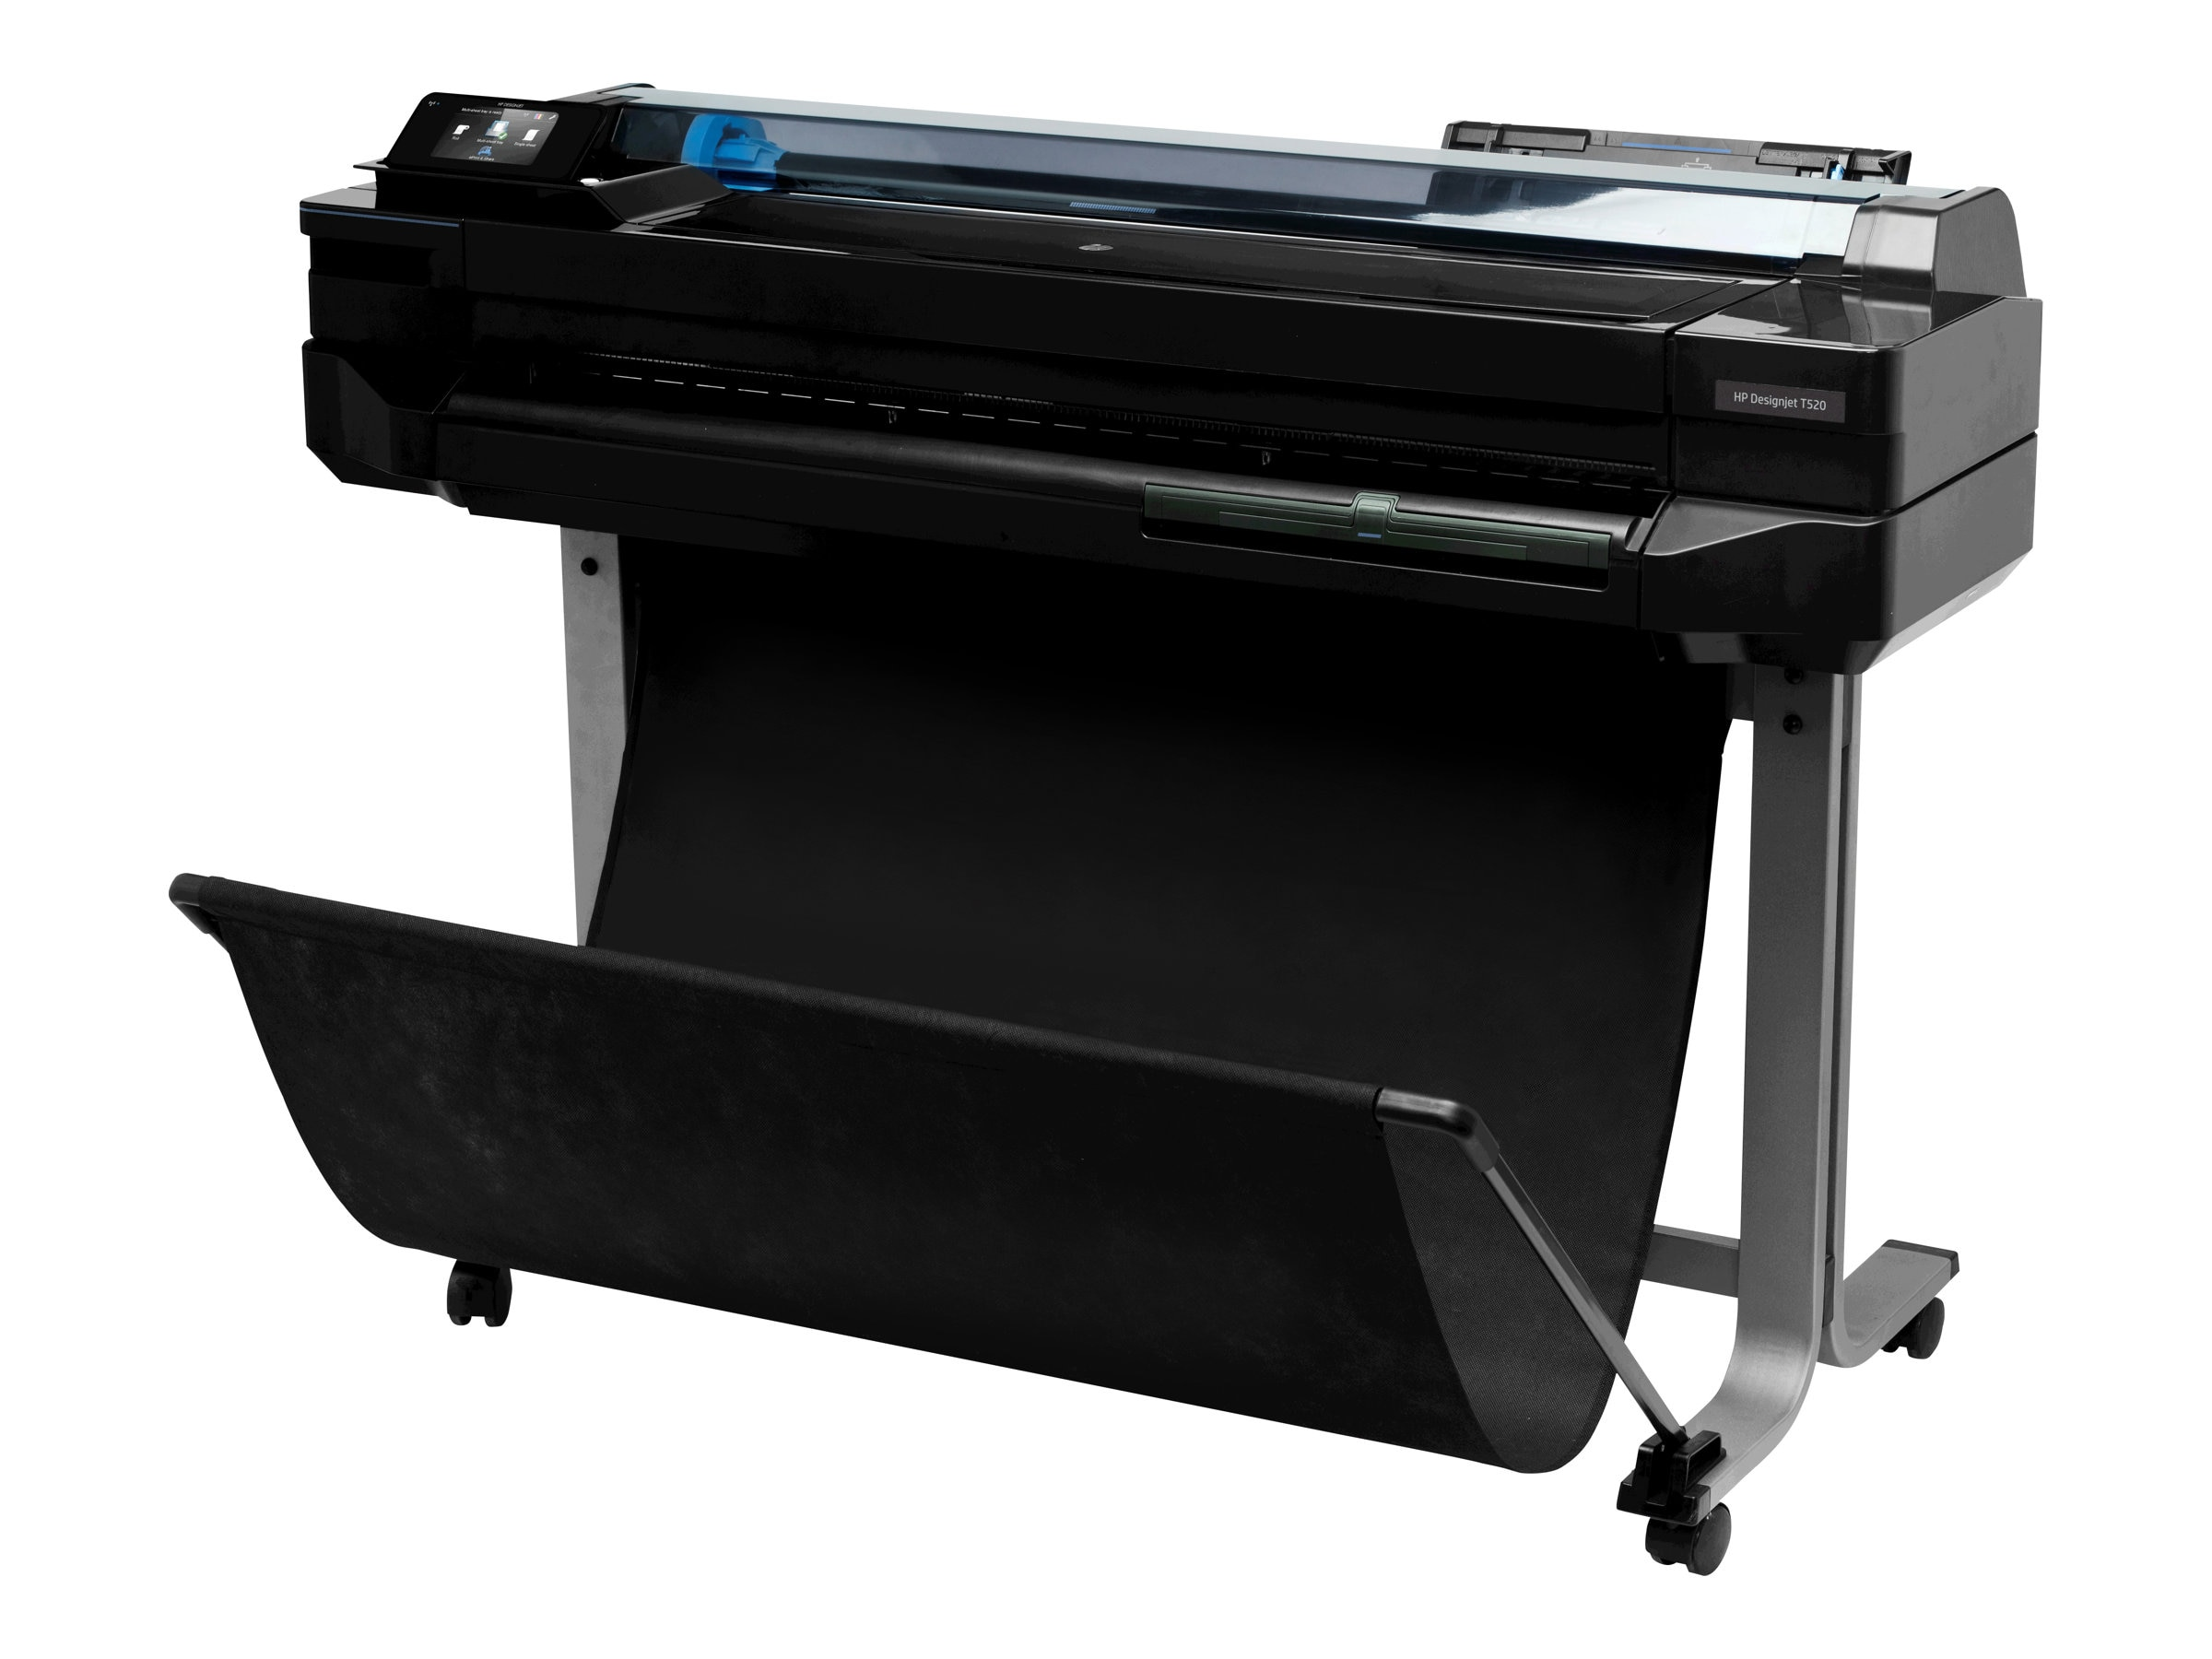 HP Designjet T520 24 ePrinter (TAA Compliant), CQ890A#BCB, 14745599, Printers - Large Format